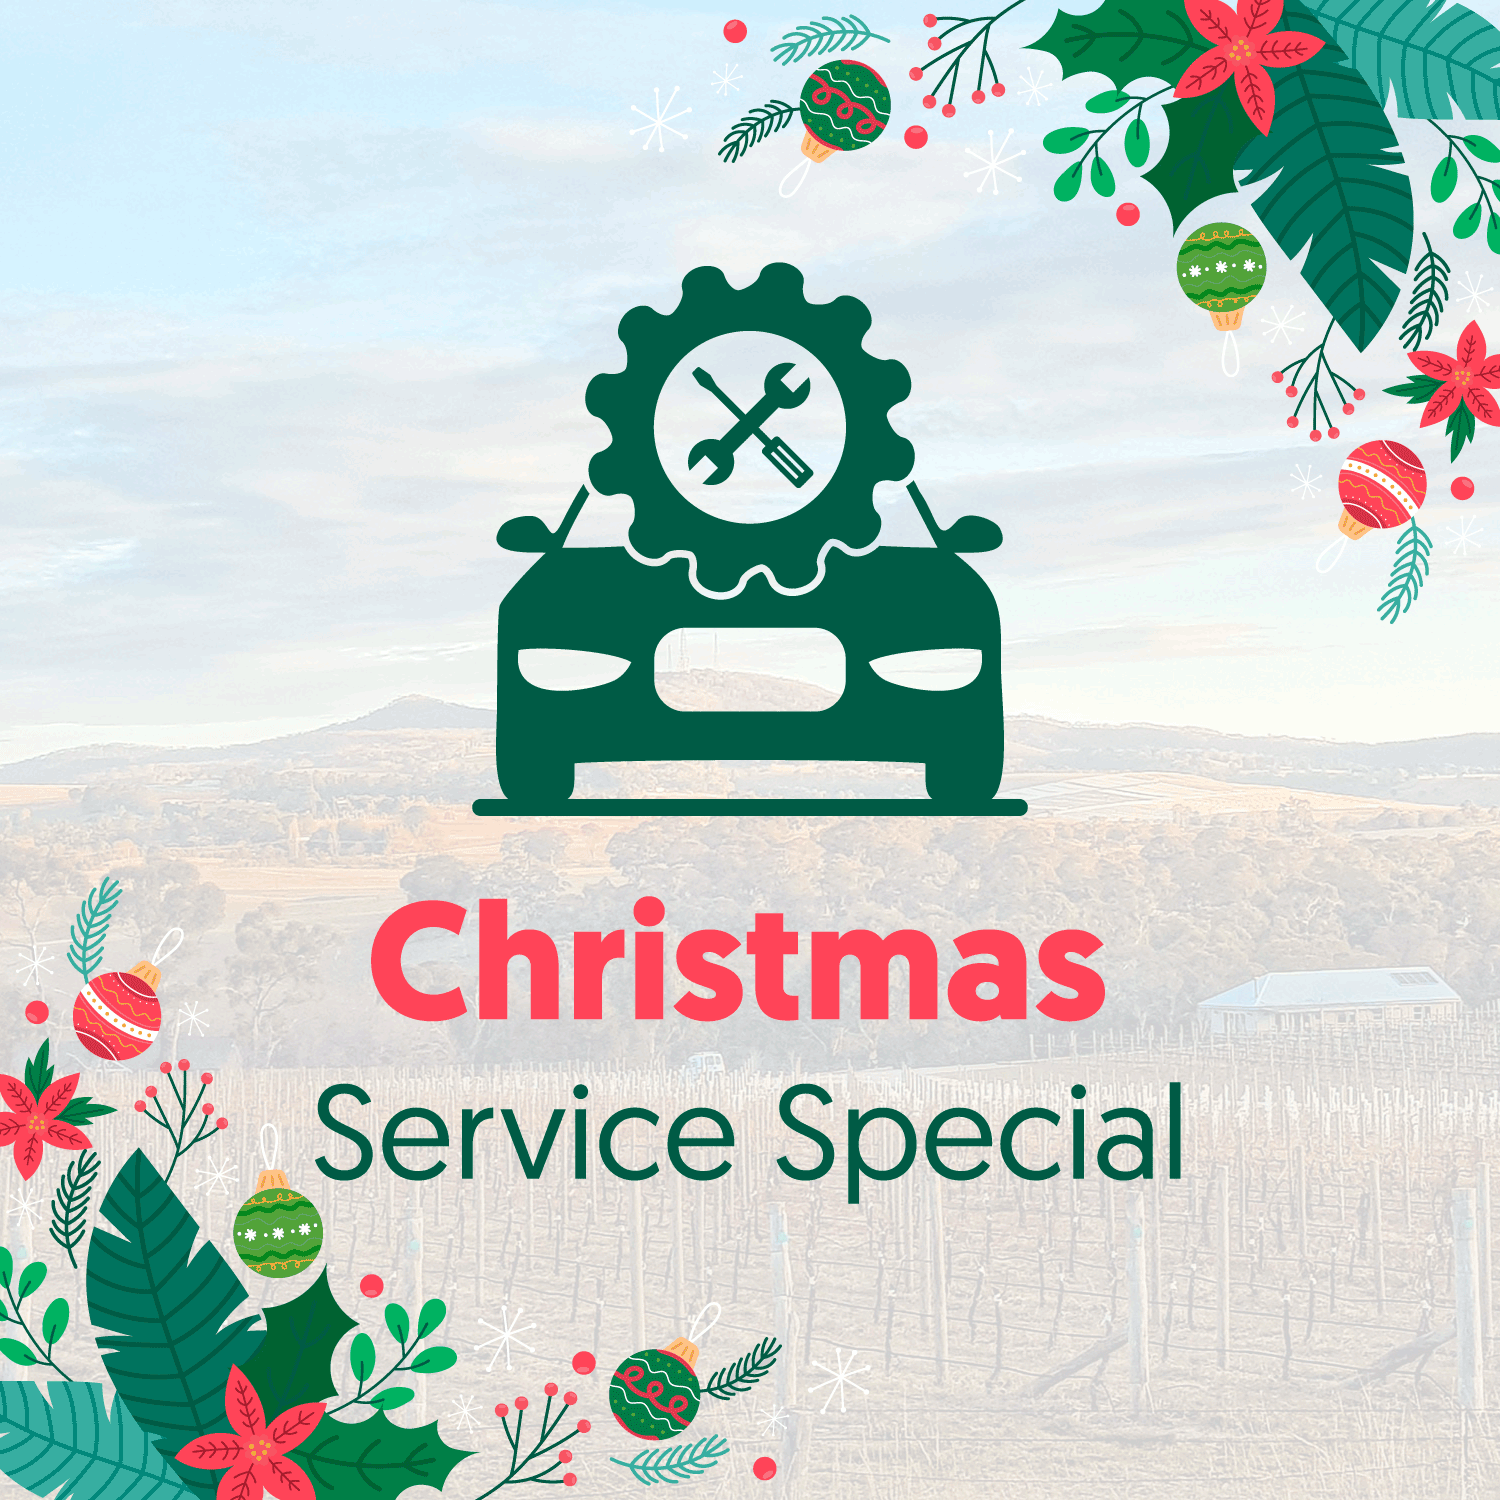 Christmas Service Special Image